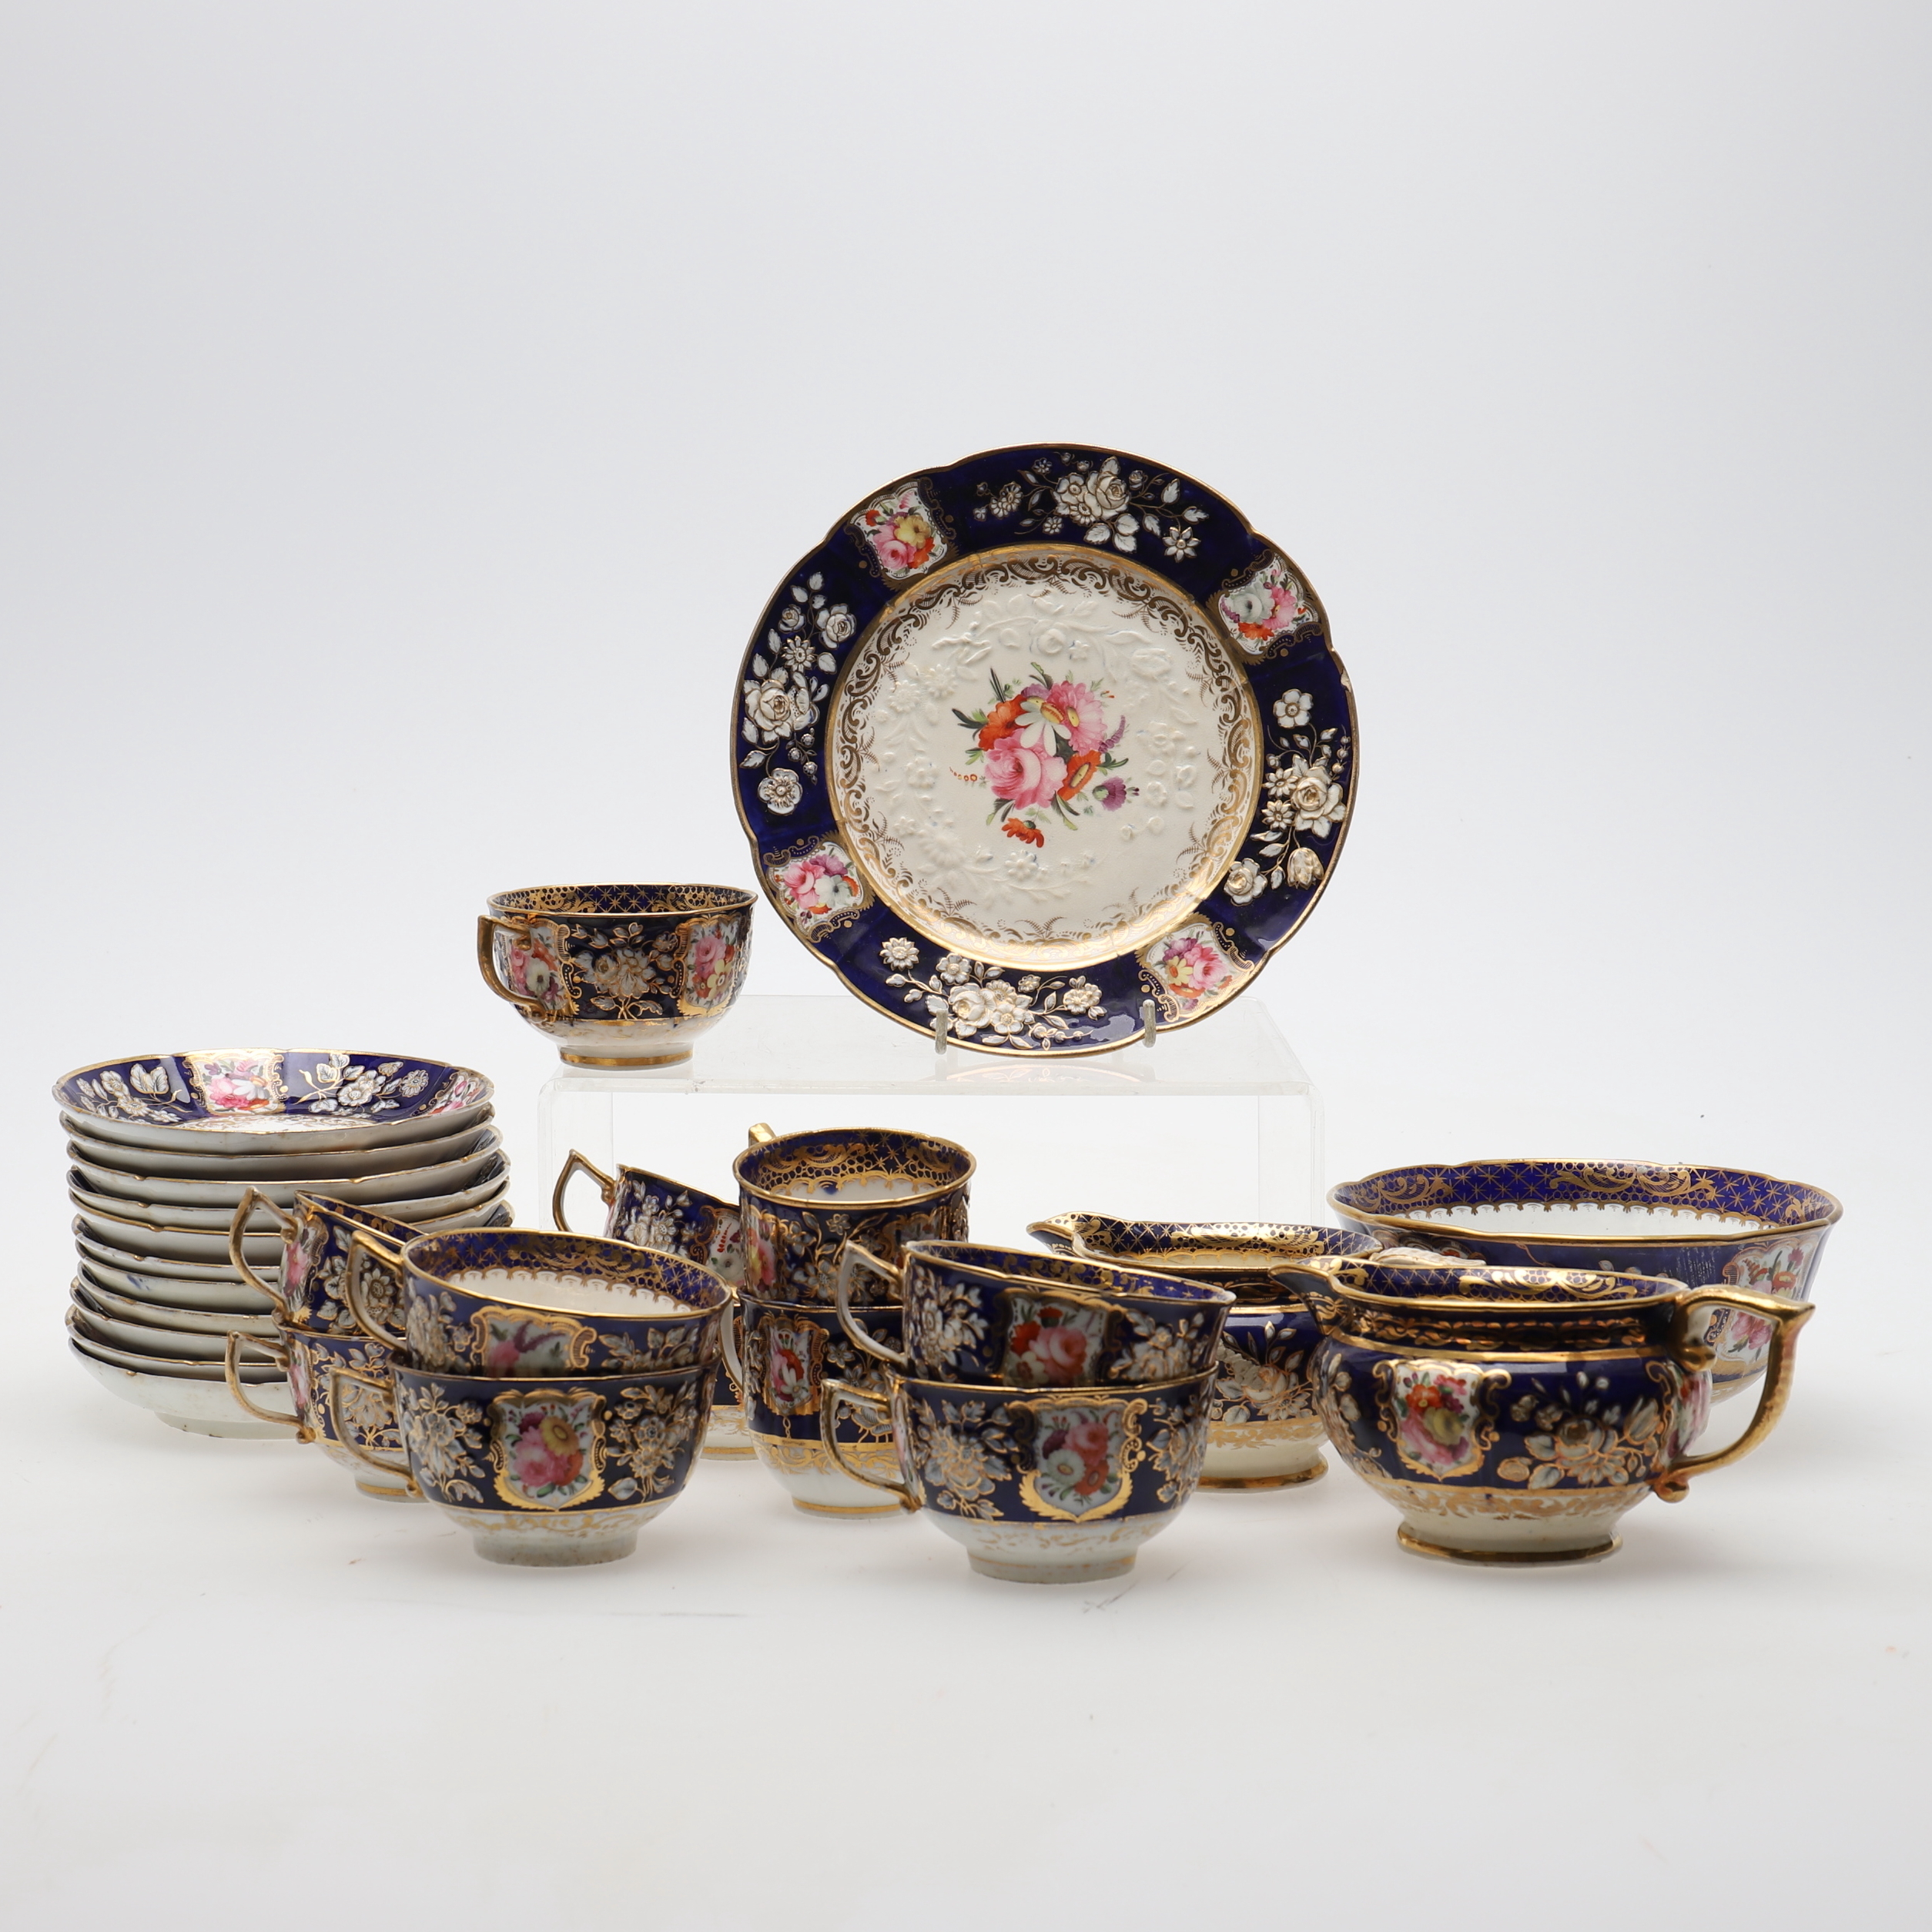 A COALPORT PORCELAIN BLUE GROUND AND GILT PART TEA SERVICE